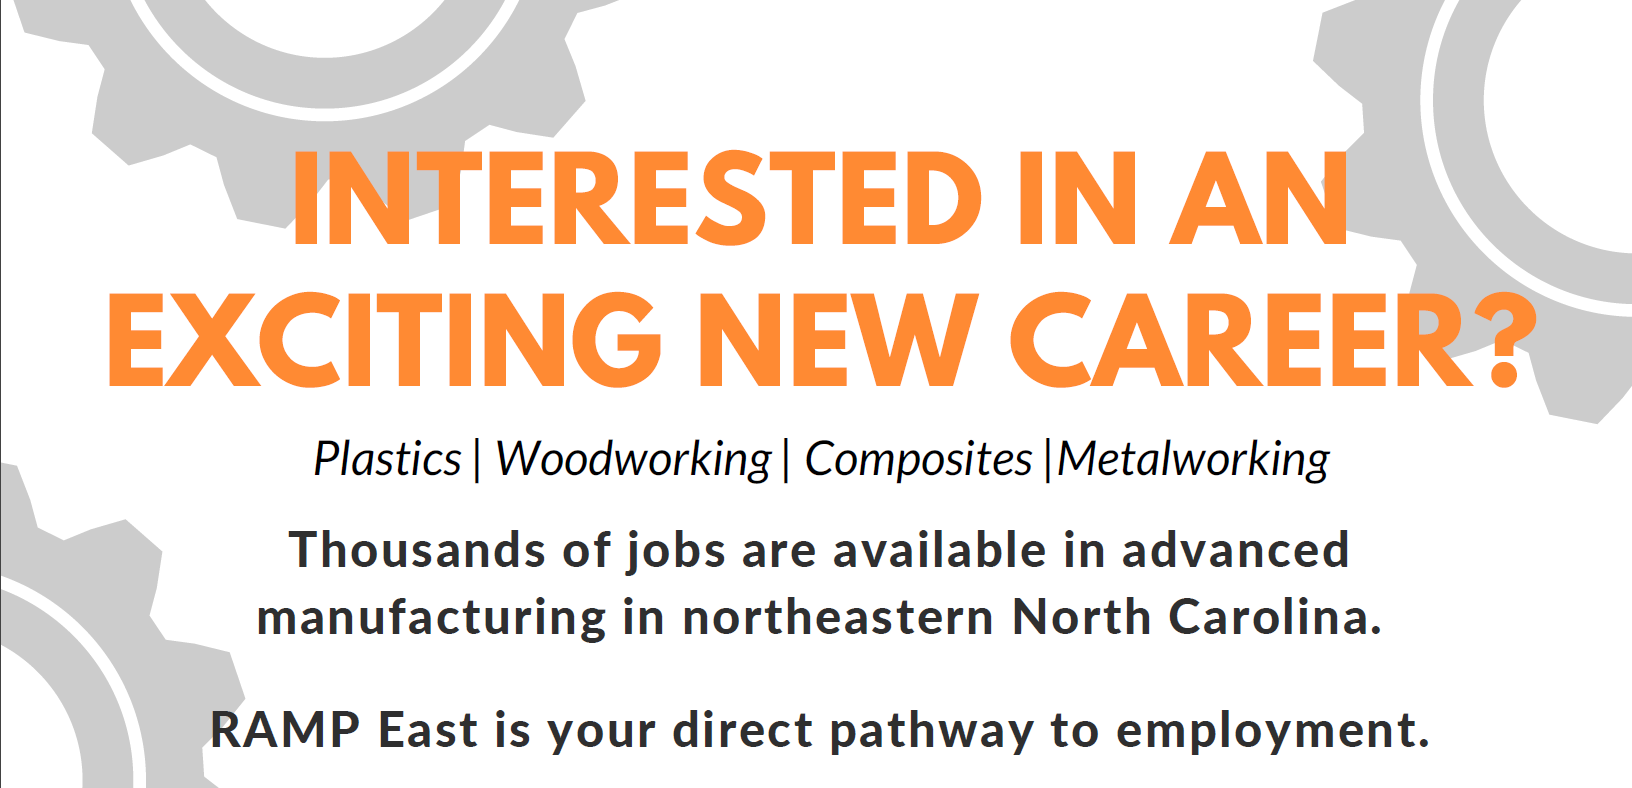 RAMP East is your direct pathway to employment!